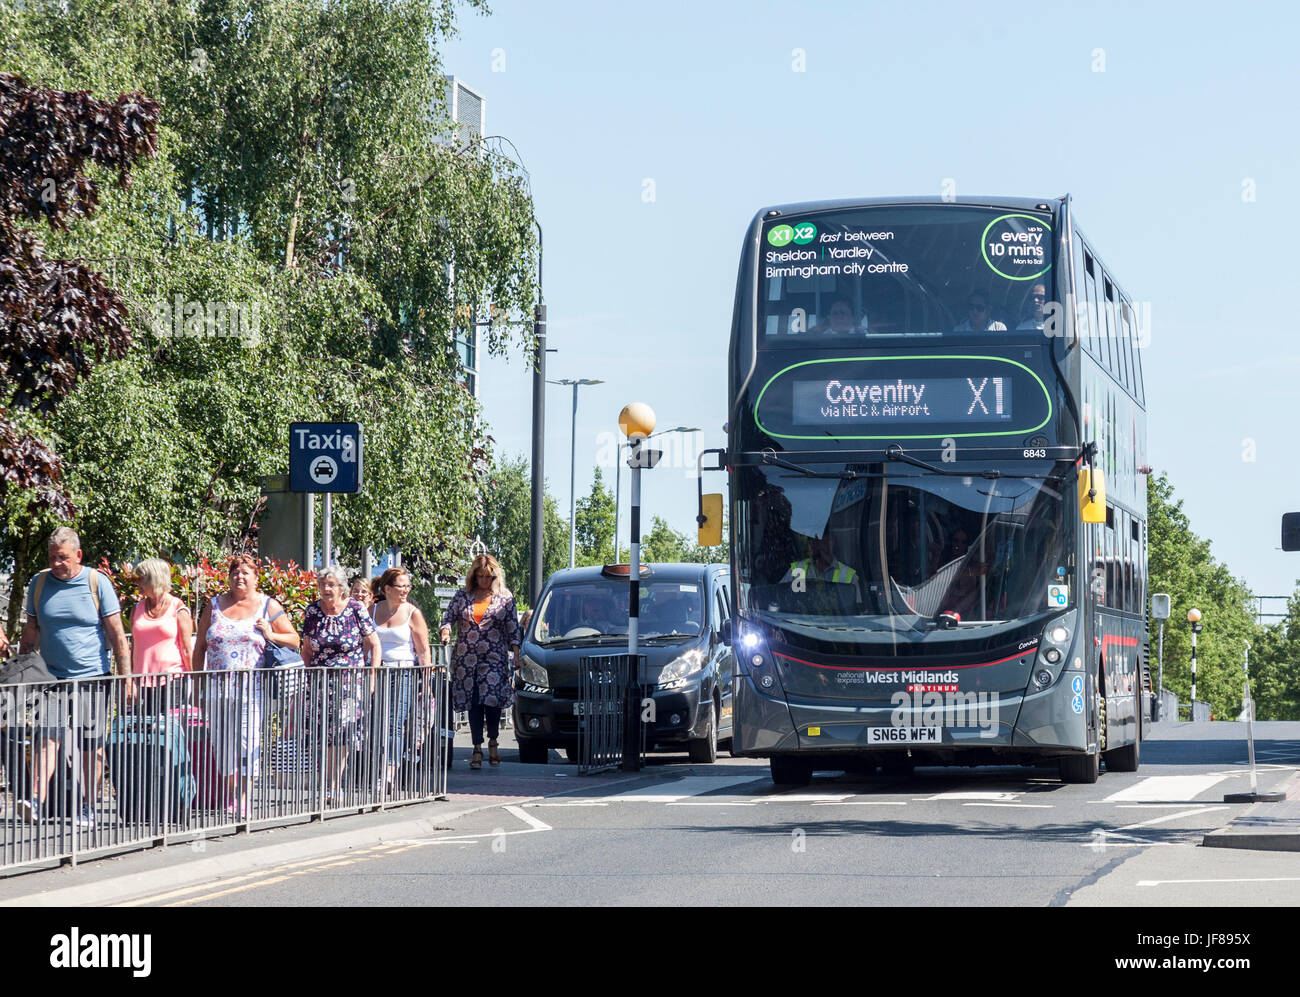 X1 Bus High Resolution Stock Photography And Images Alamy